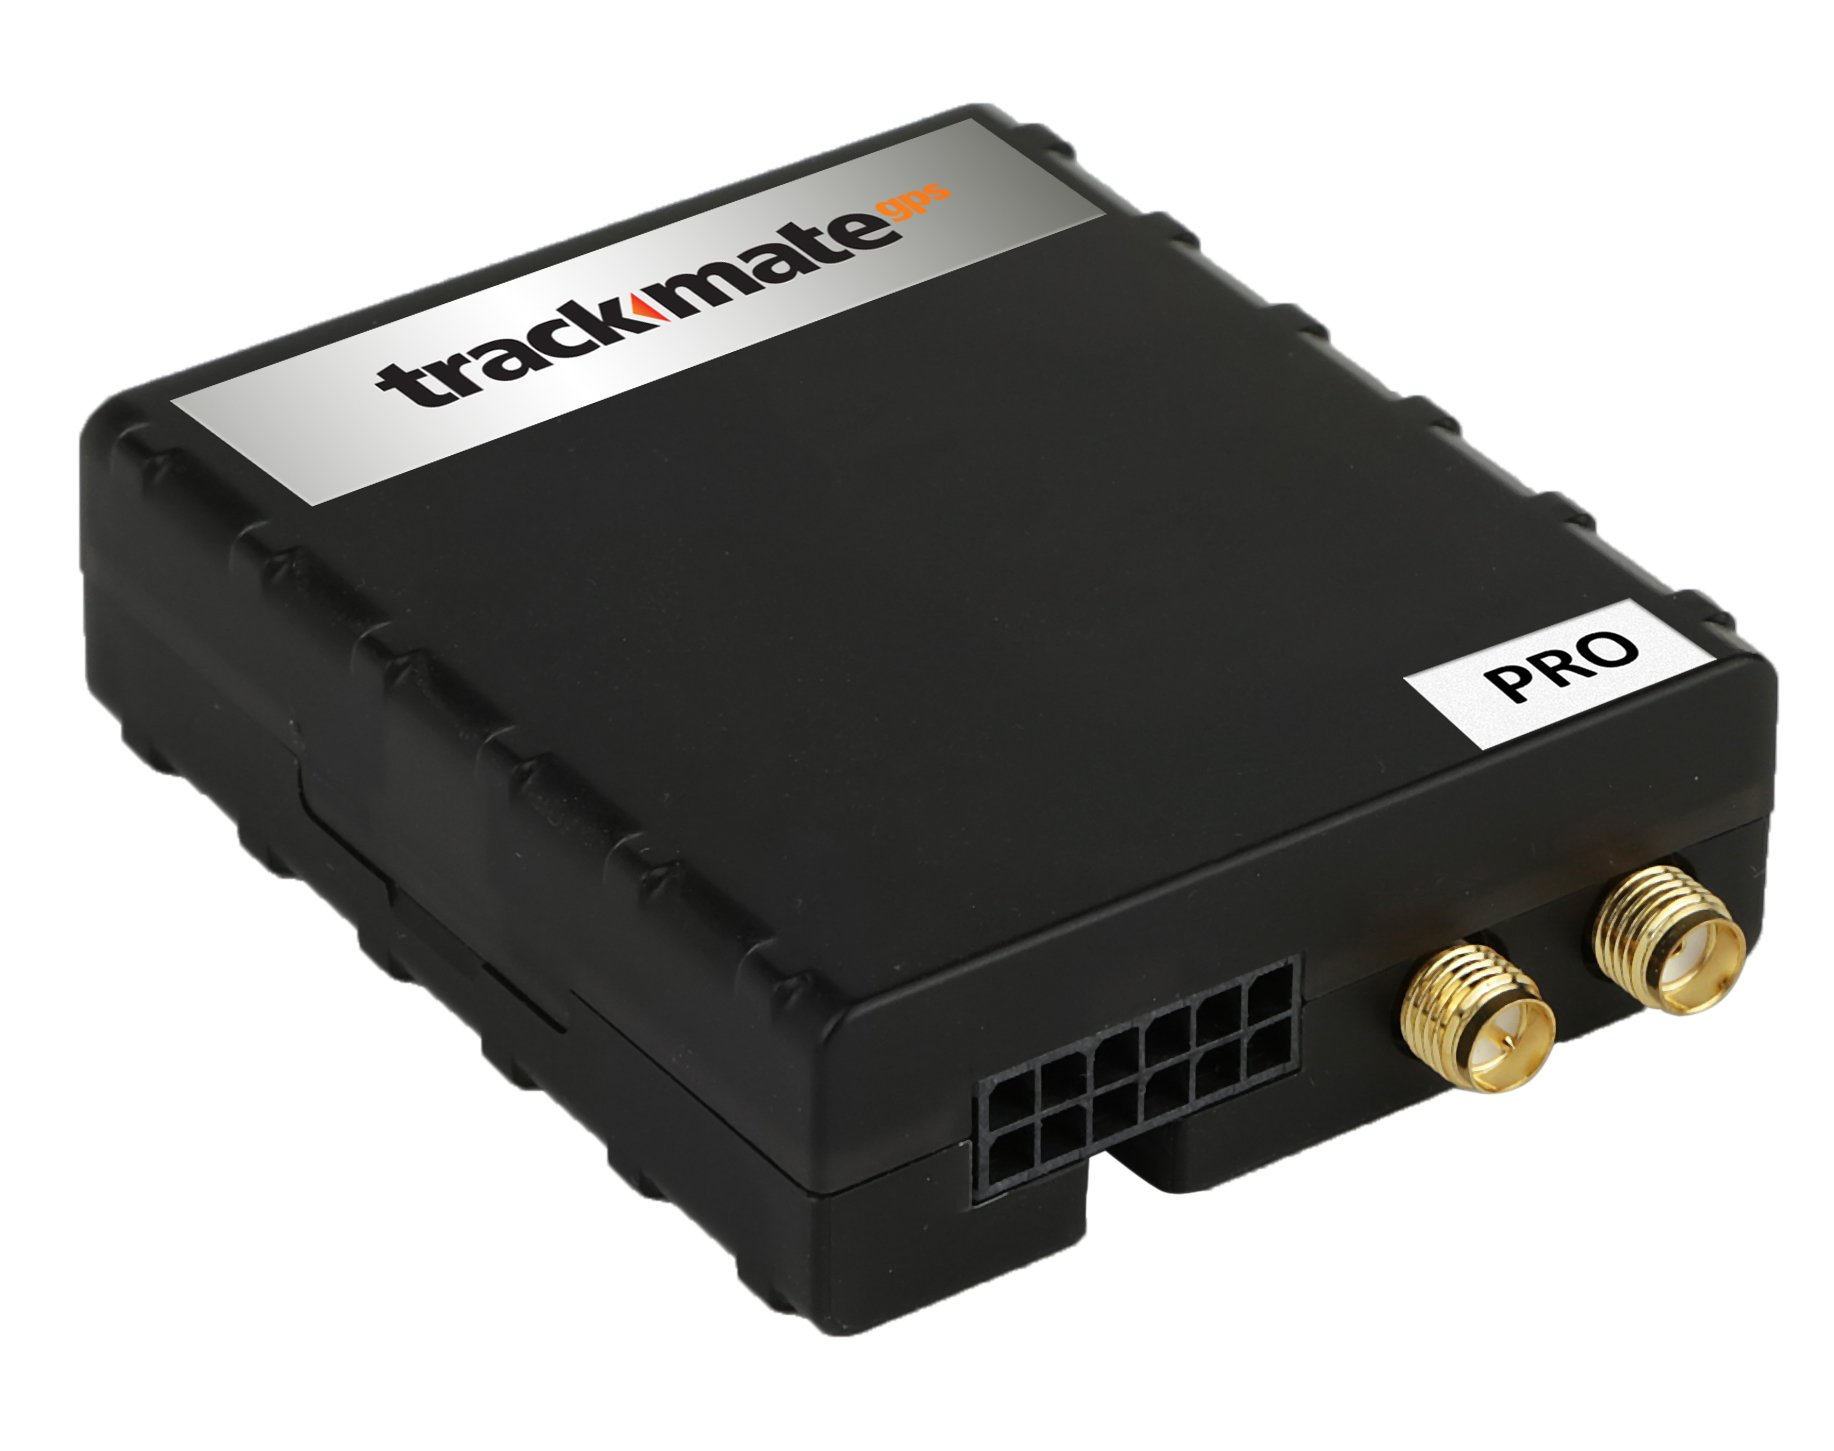 Introductory Special! MINI PRO 3G Real Time Gps Tracker With Driver Behavior Reporting.